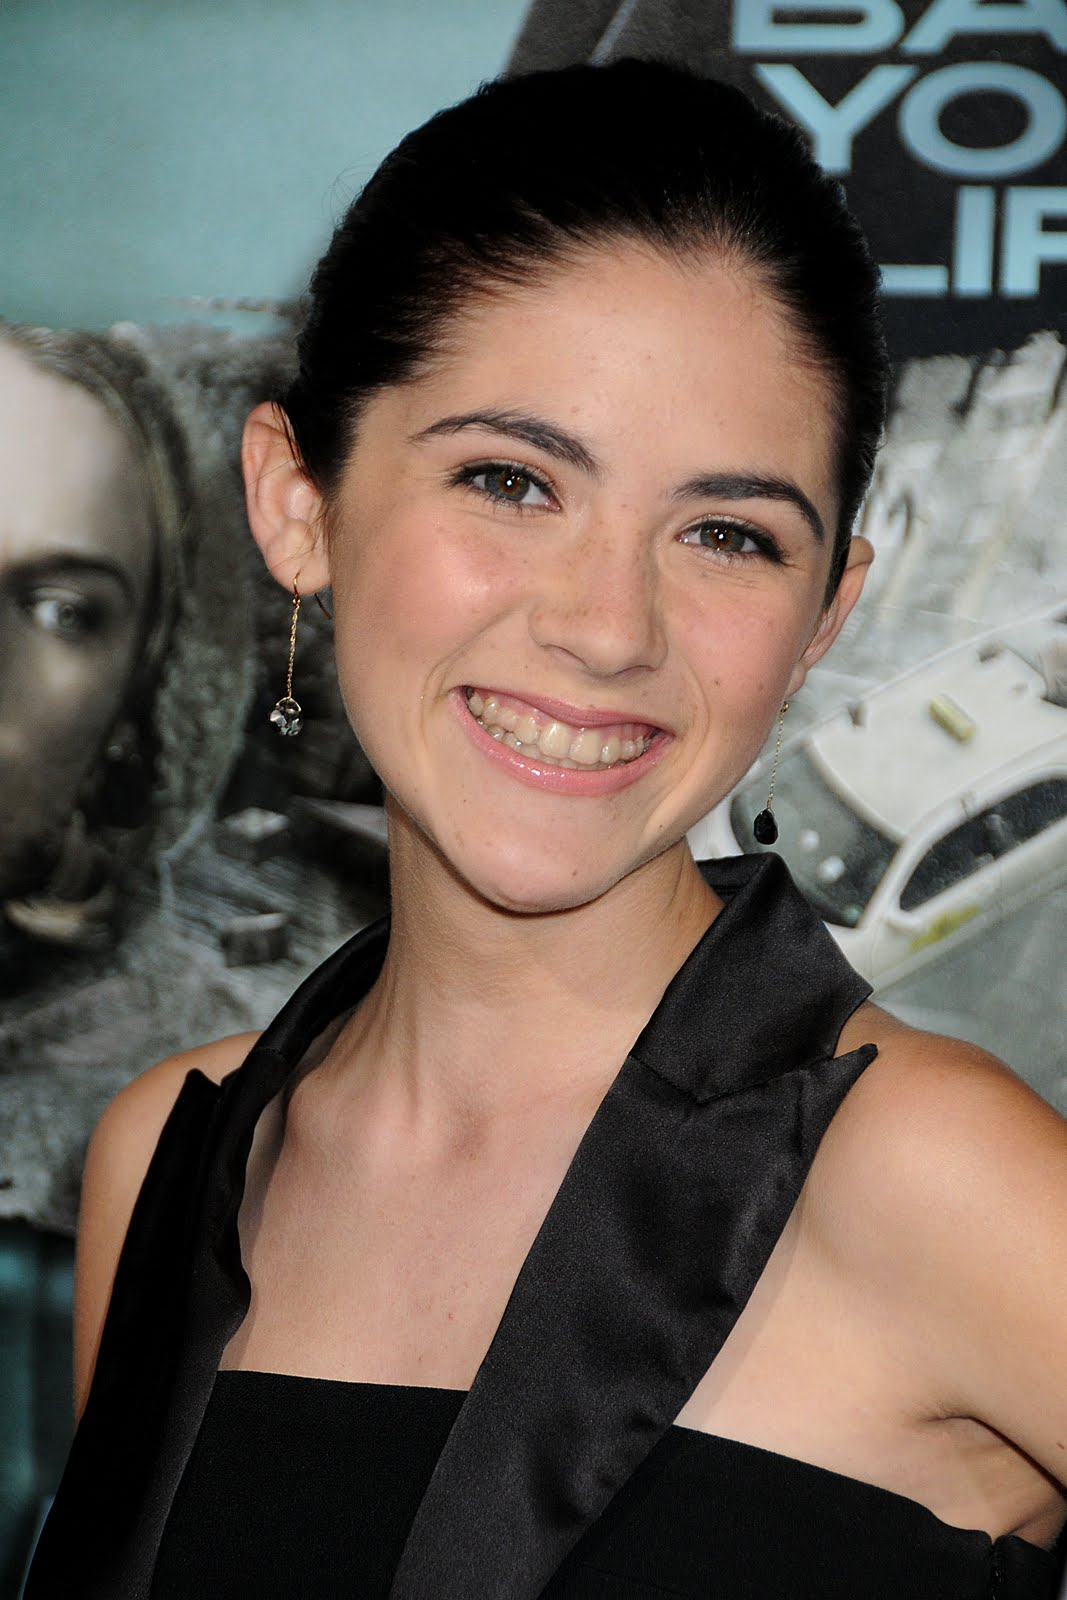 Isabelle Fuhrman, The Hunger Games